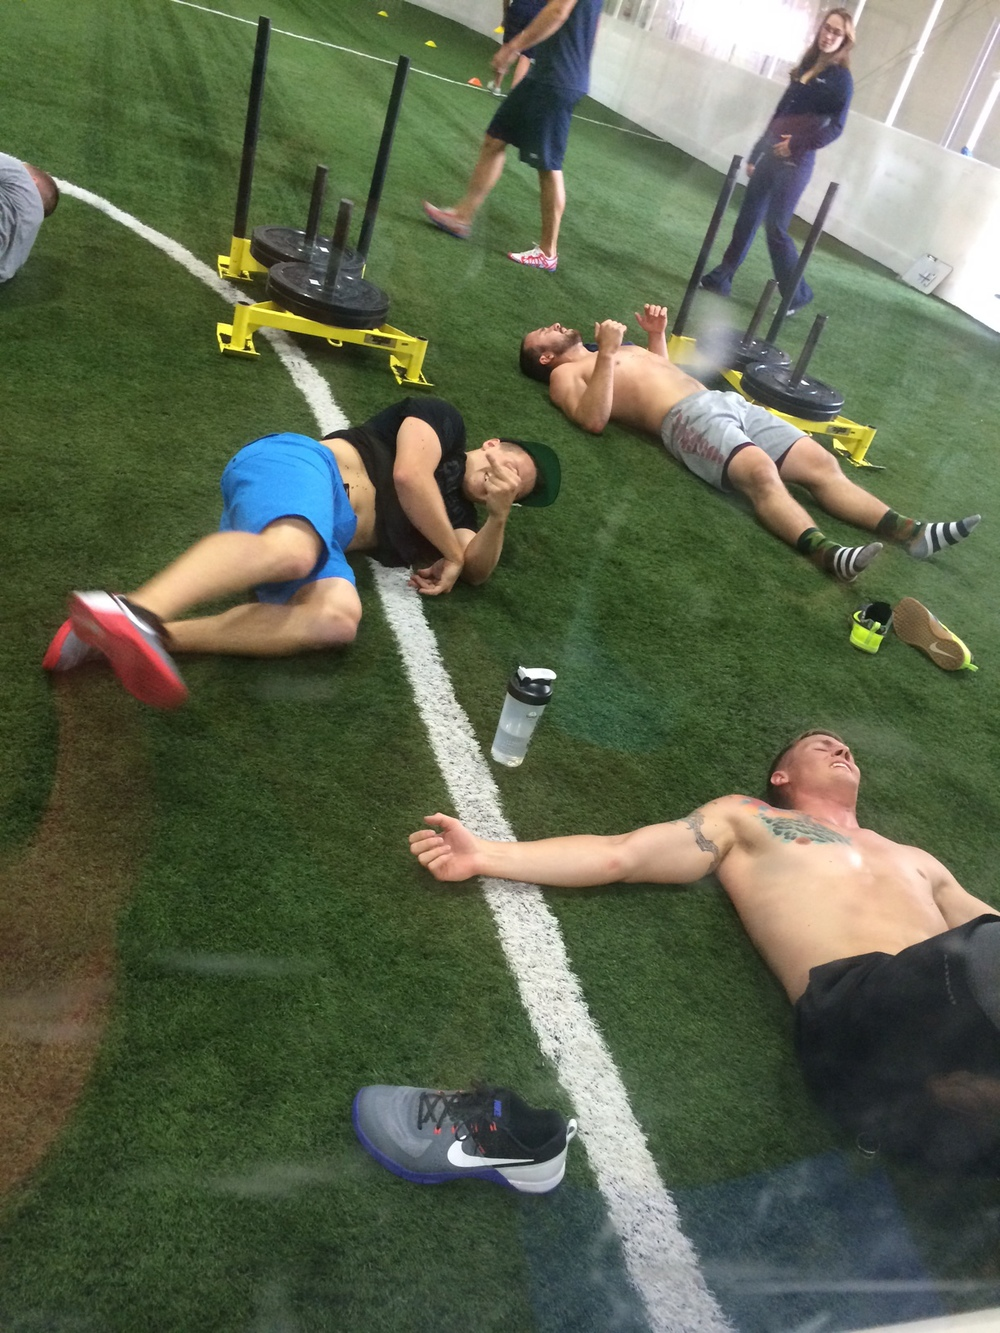 Tanner, Travis and other competitors post Push-Sled workout